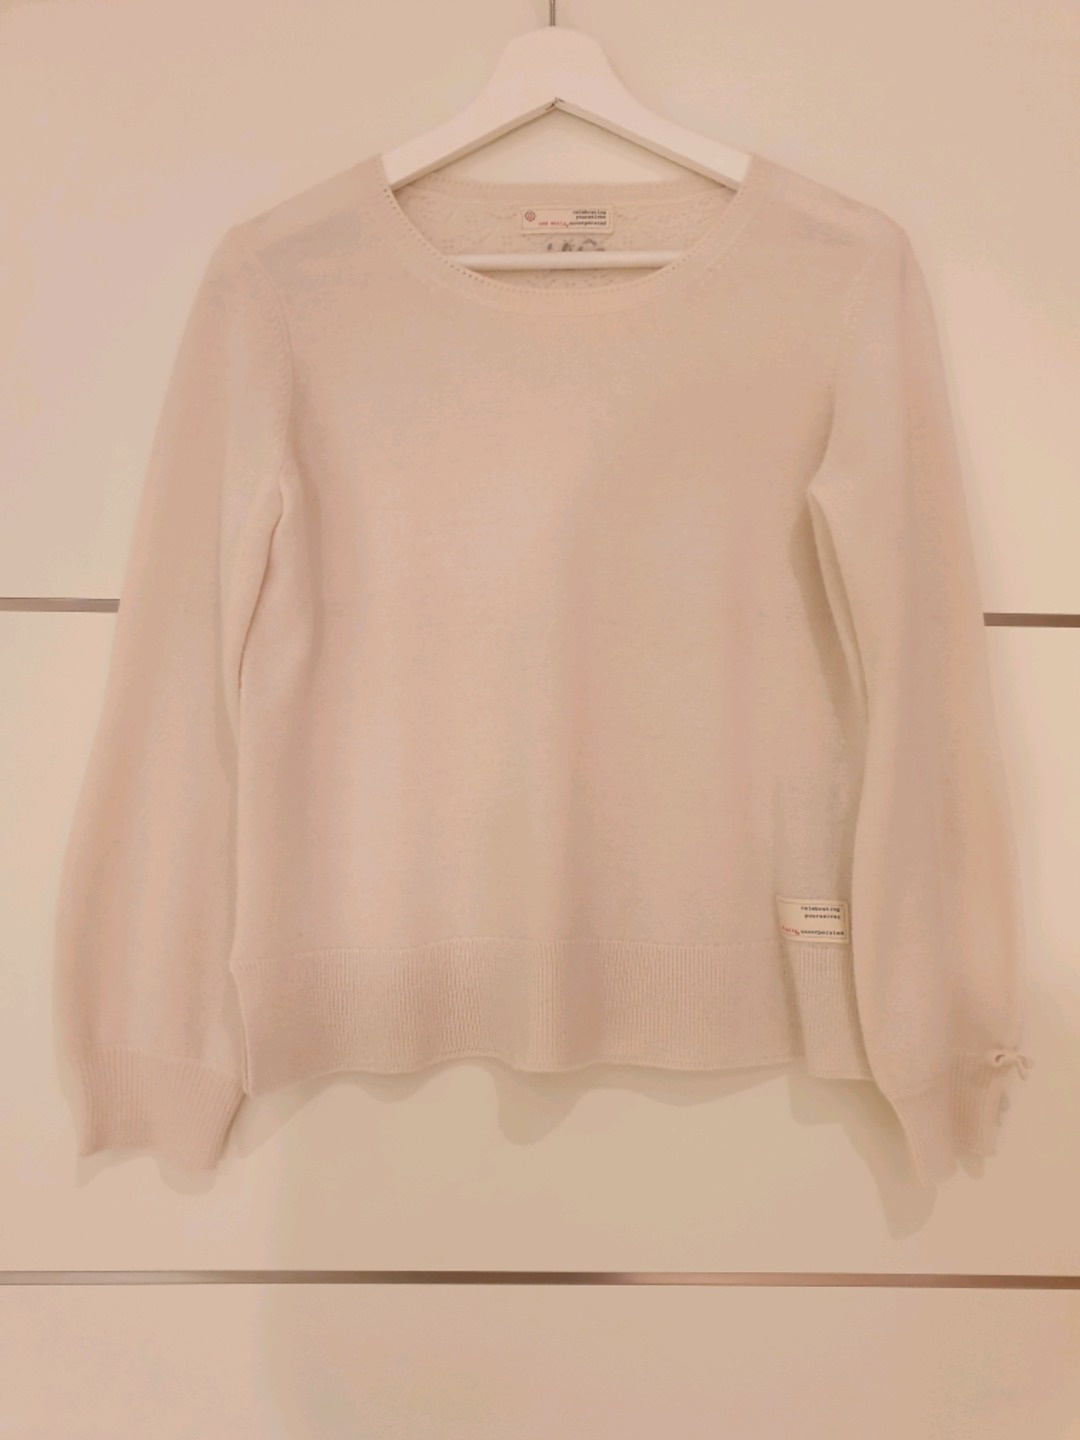 Women's jumpers & cardigans - ODD MOLLY photo 1